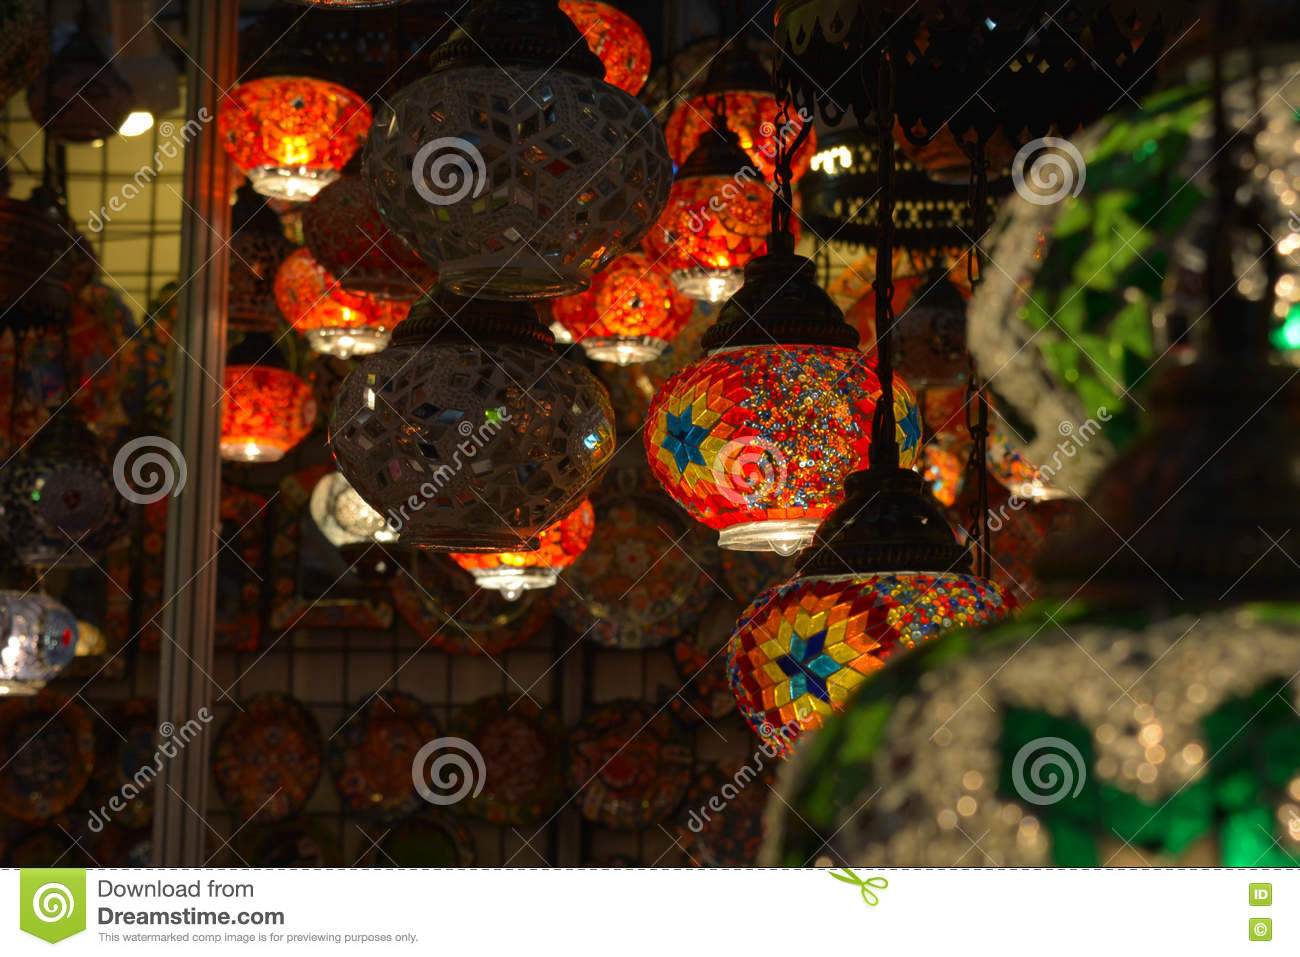 Download L& designs stock photo. Image of different colors - 81221248 & Lamp designs stock photo. Image of different colors - 81221248